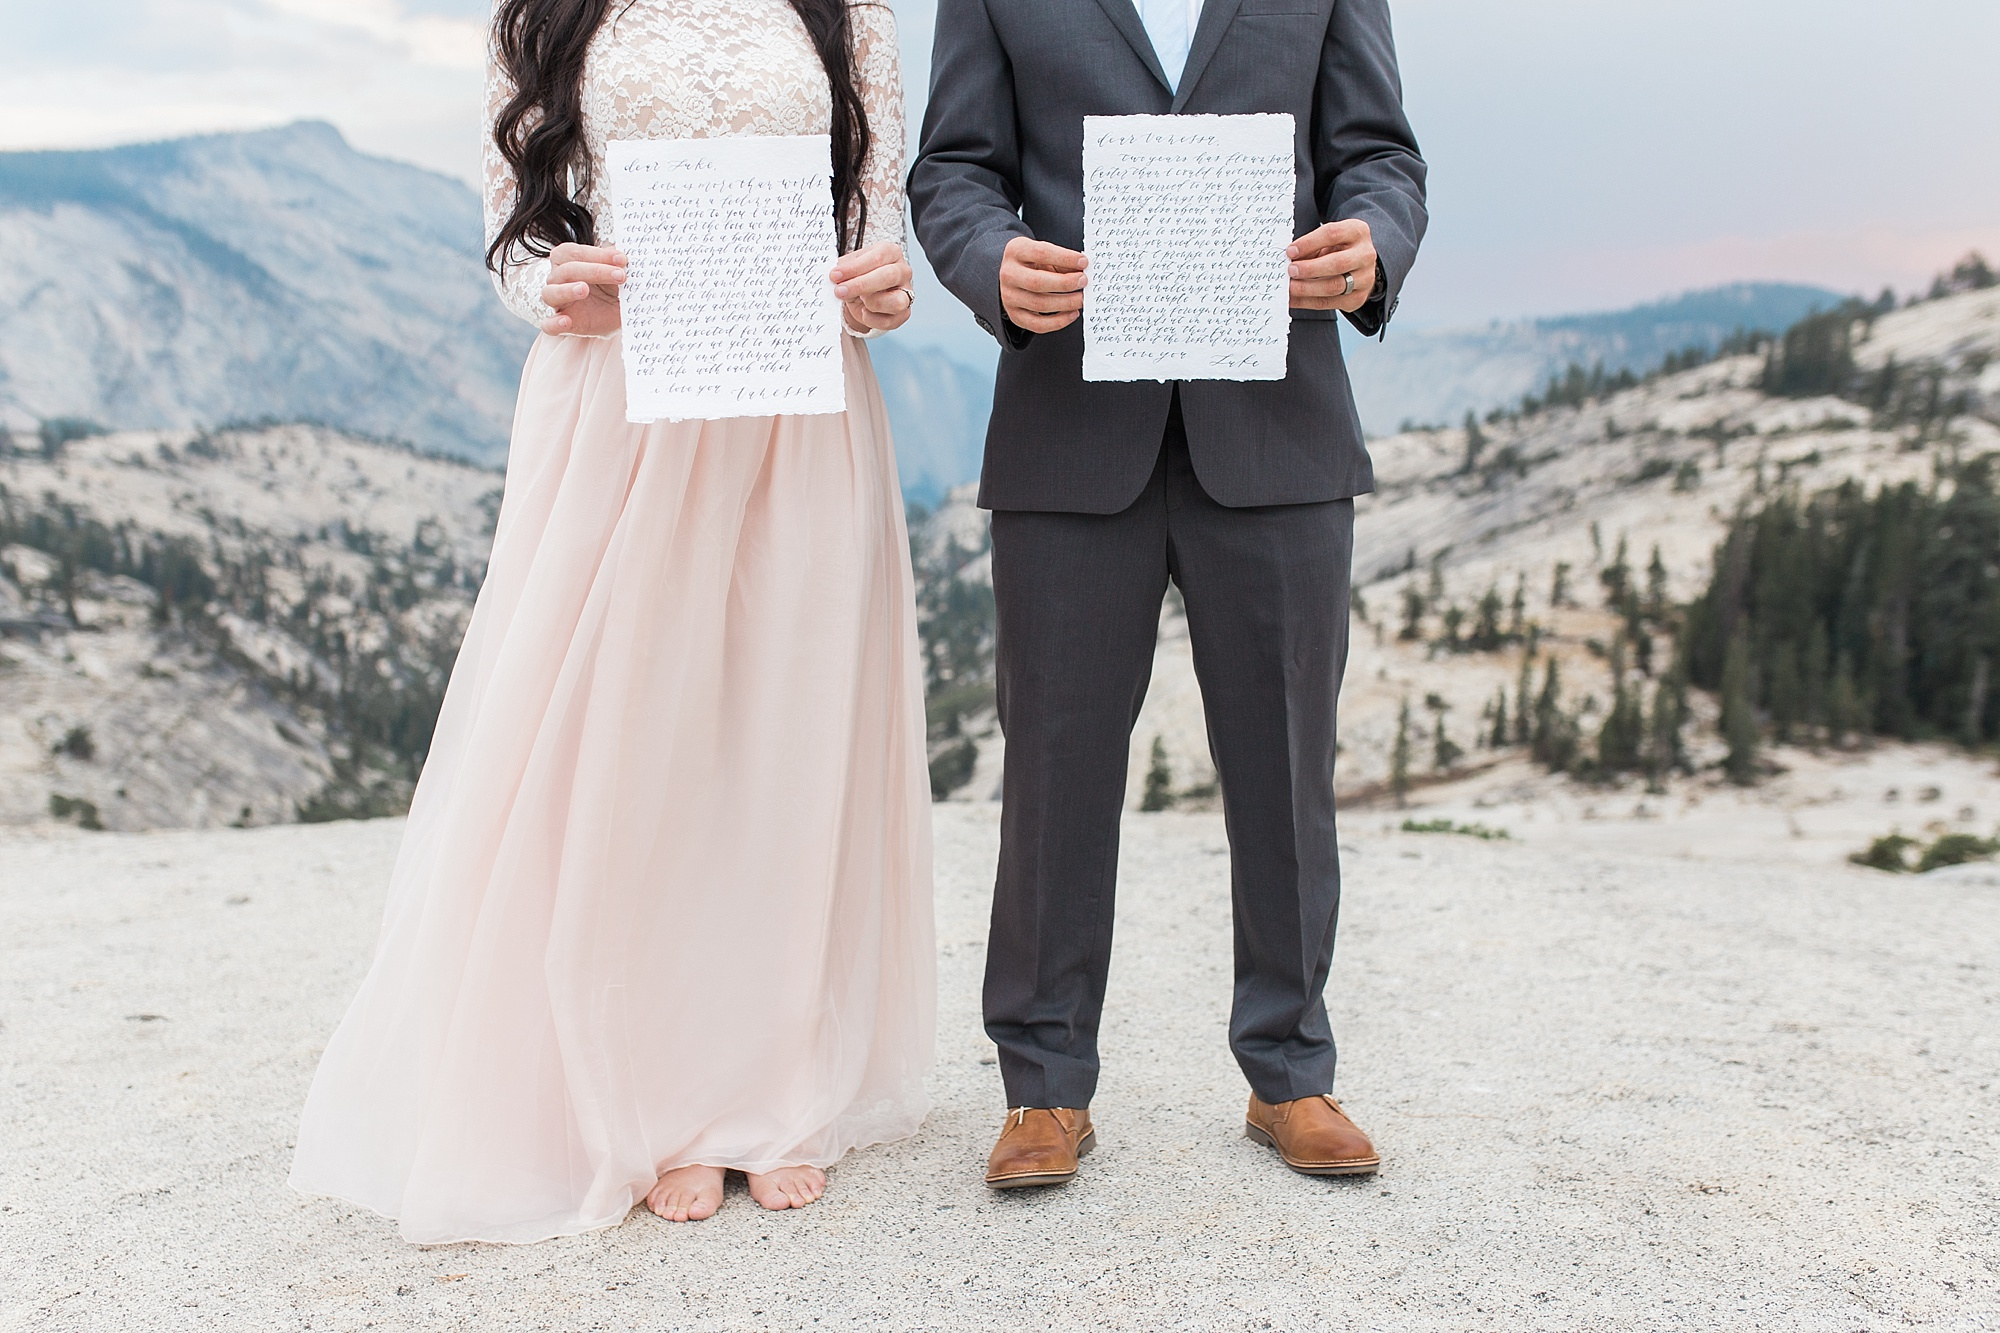 Ashley Baumgartner Photography & Calligraphy Yosemite Vow Renewal featured on 100 Layer Cake_0003.jpg